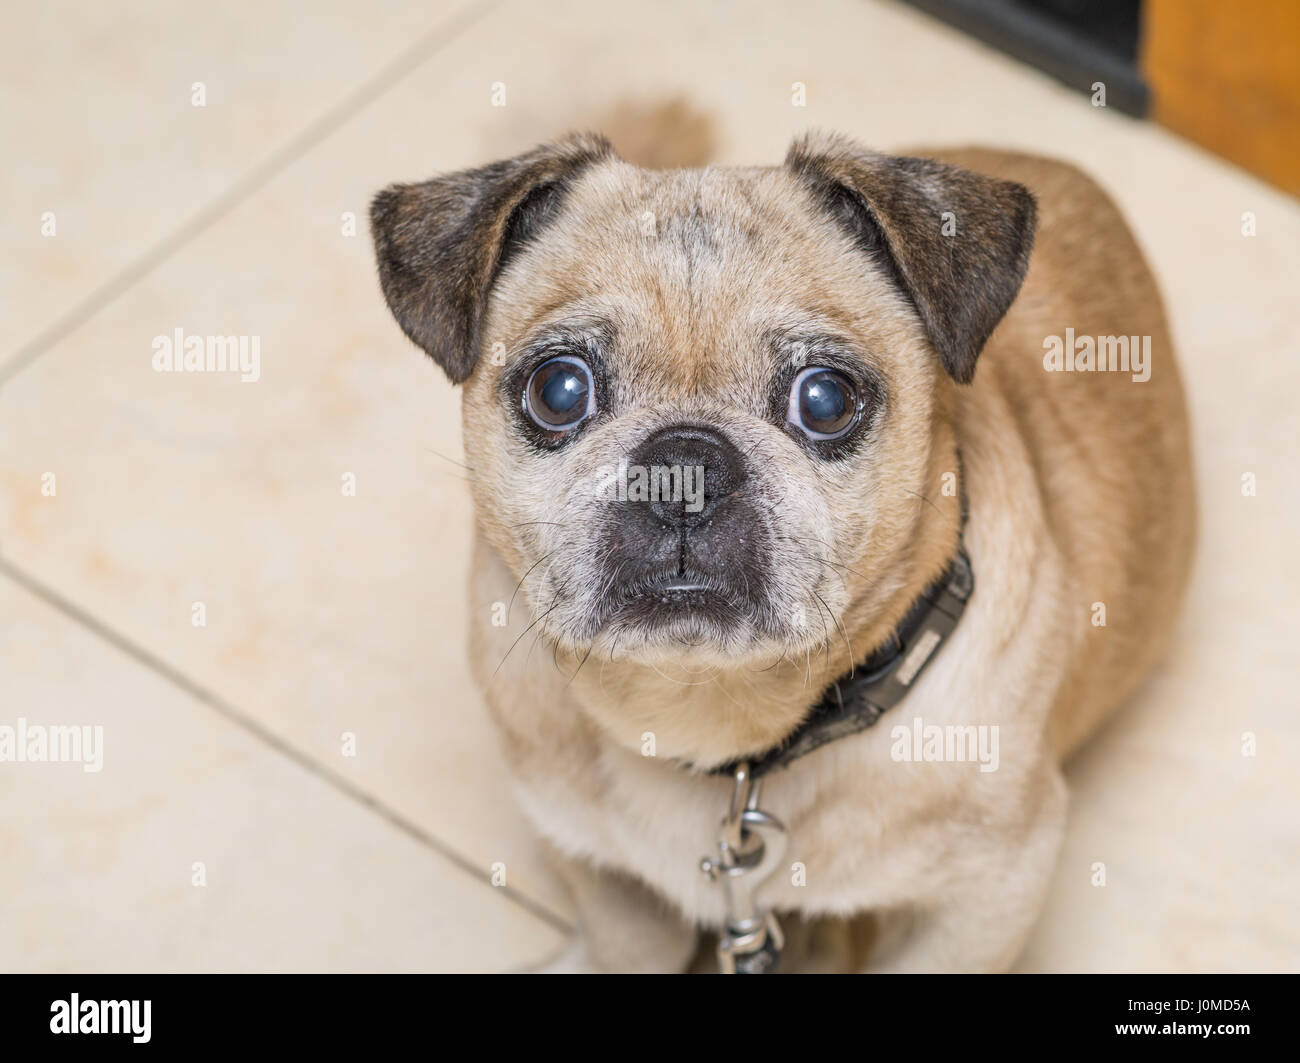 Almond The Pug, eyes open, rest on ground. - Stock Image